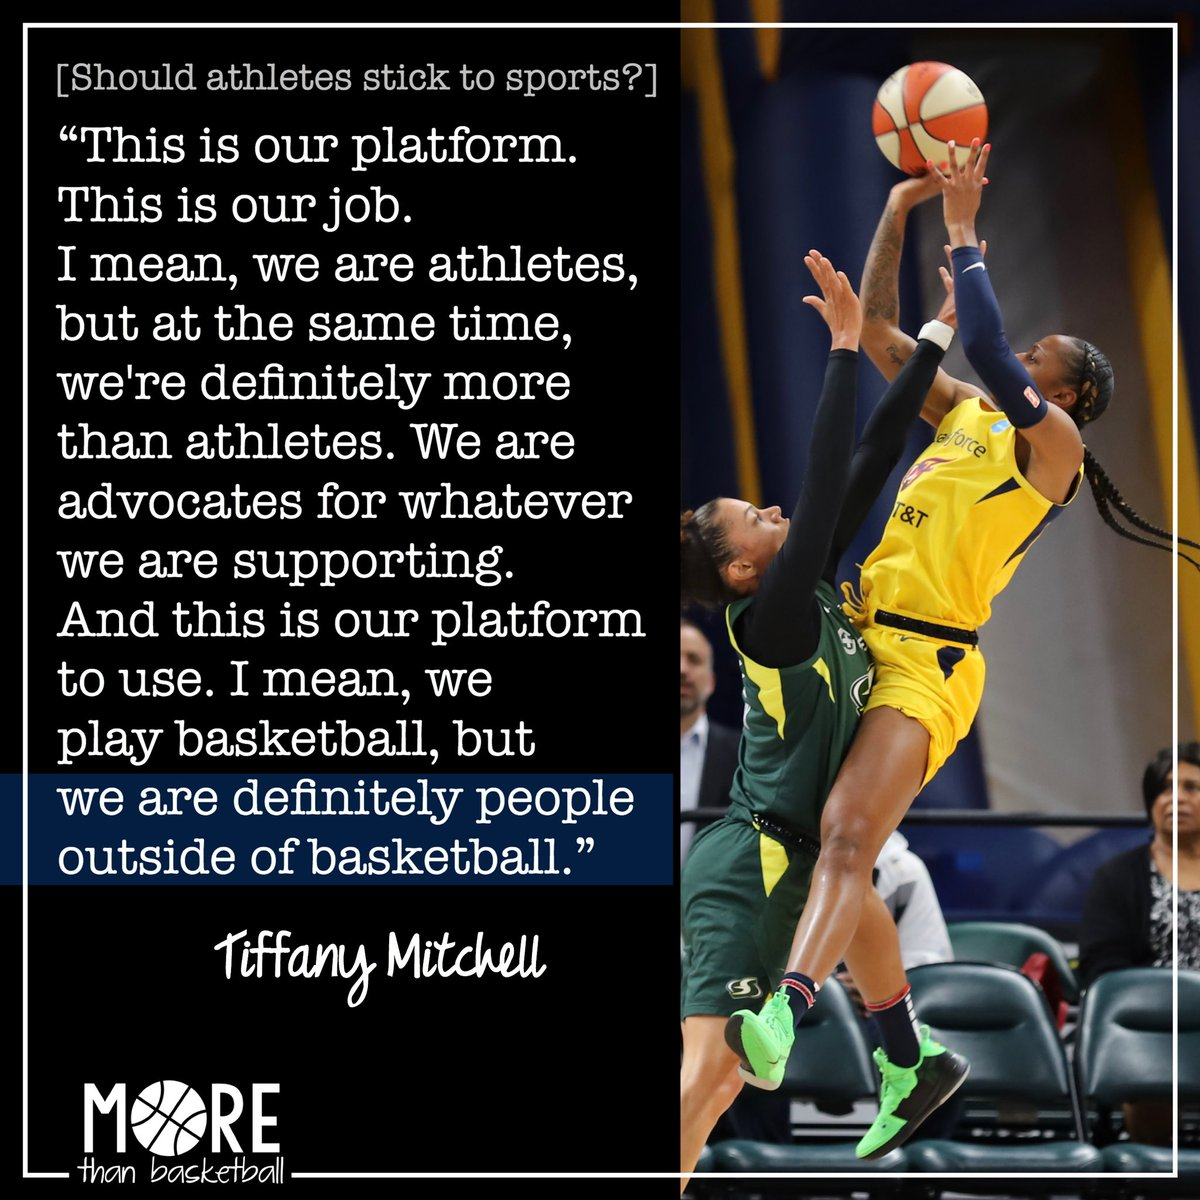 """Athletes are speaking up on important issues - as fellow citizens, as humans. @tiffmitch25 on why athletes shouldn't """"stick to sports."""" . #wnba #fever20 #indianafever"""